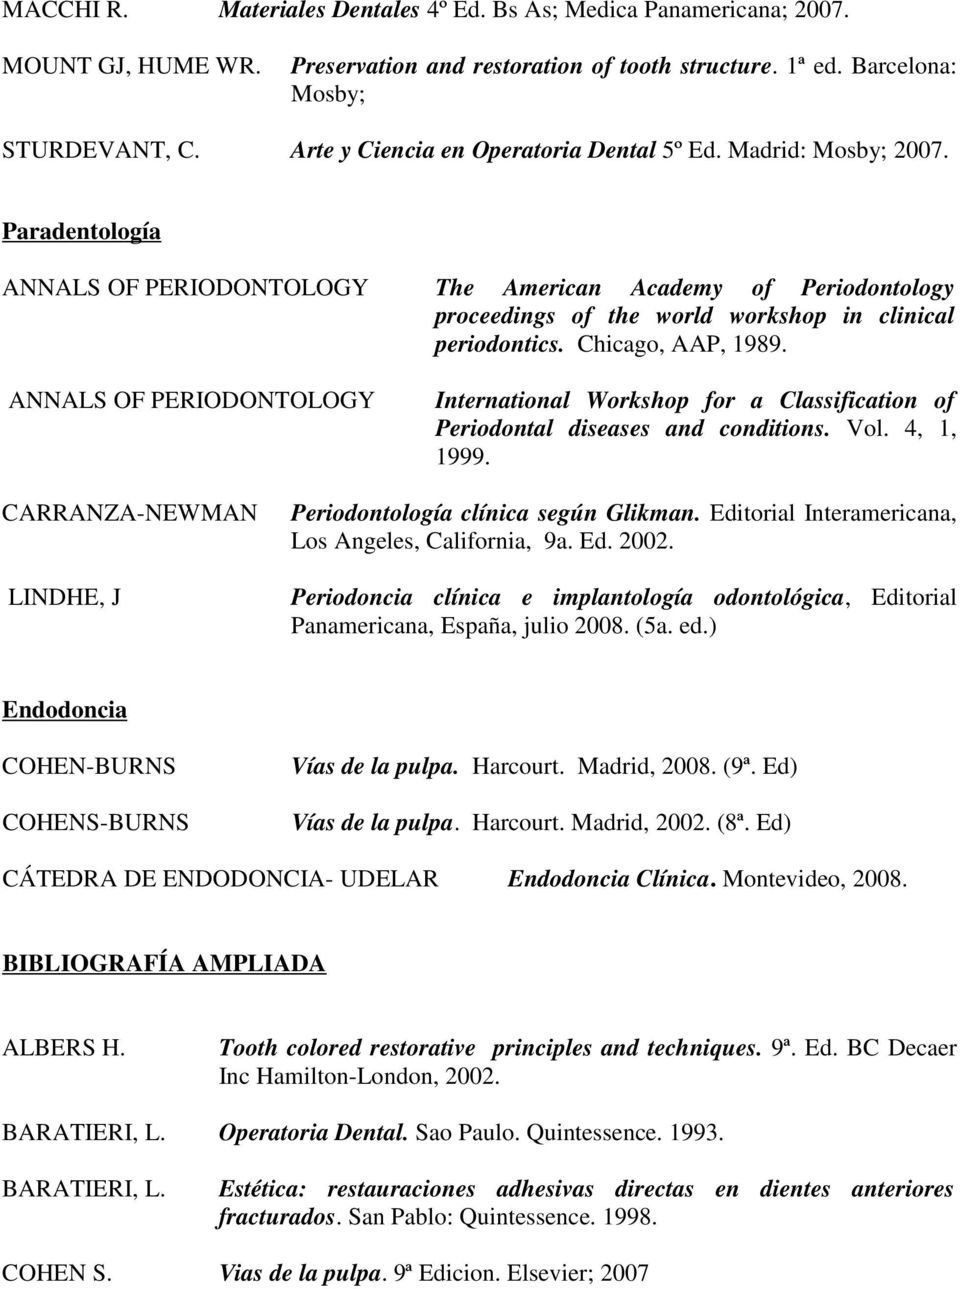 Paradentología ANNALS OF PERIODONTOLOGY ANNALS OF PERIODONTOLOGY The American Academy of Periodontology proceedings of the world workshop in clinical periodontics. Chicago, AAP, 1989.